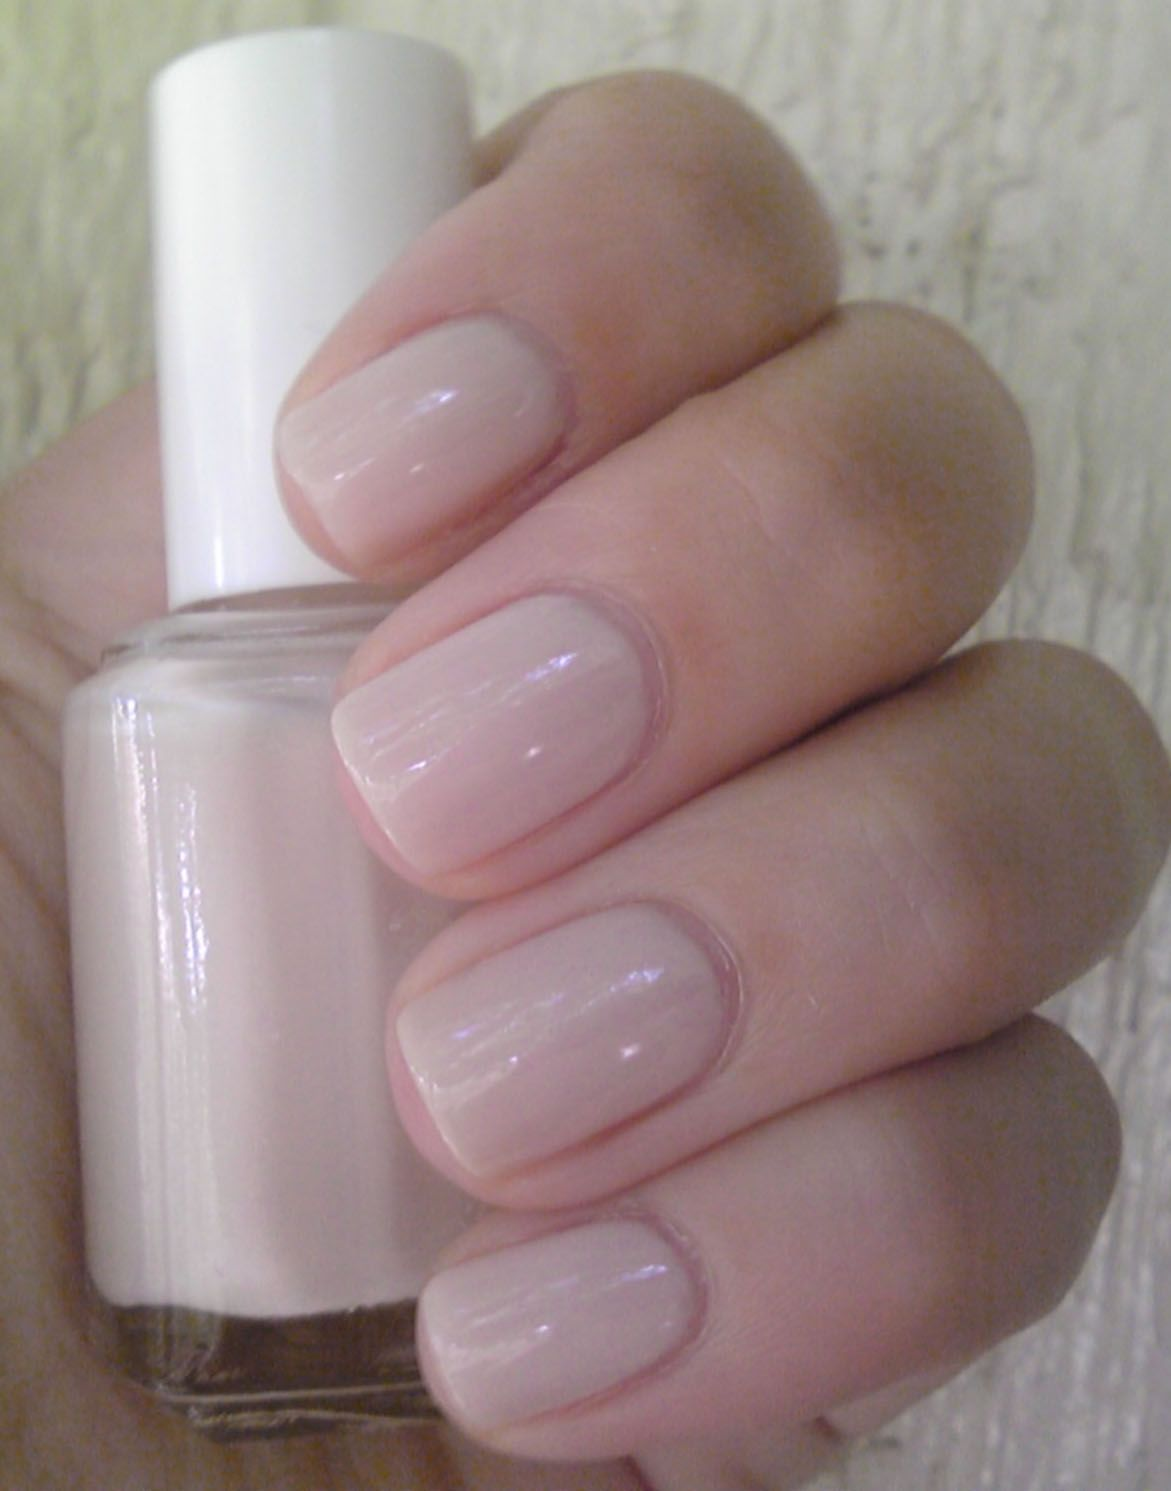 Essie Ballet Slippers - one of my favorite colors for a nice nude ...